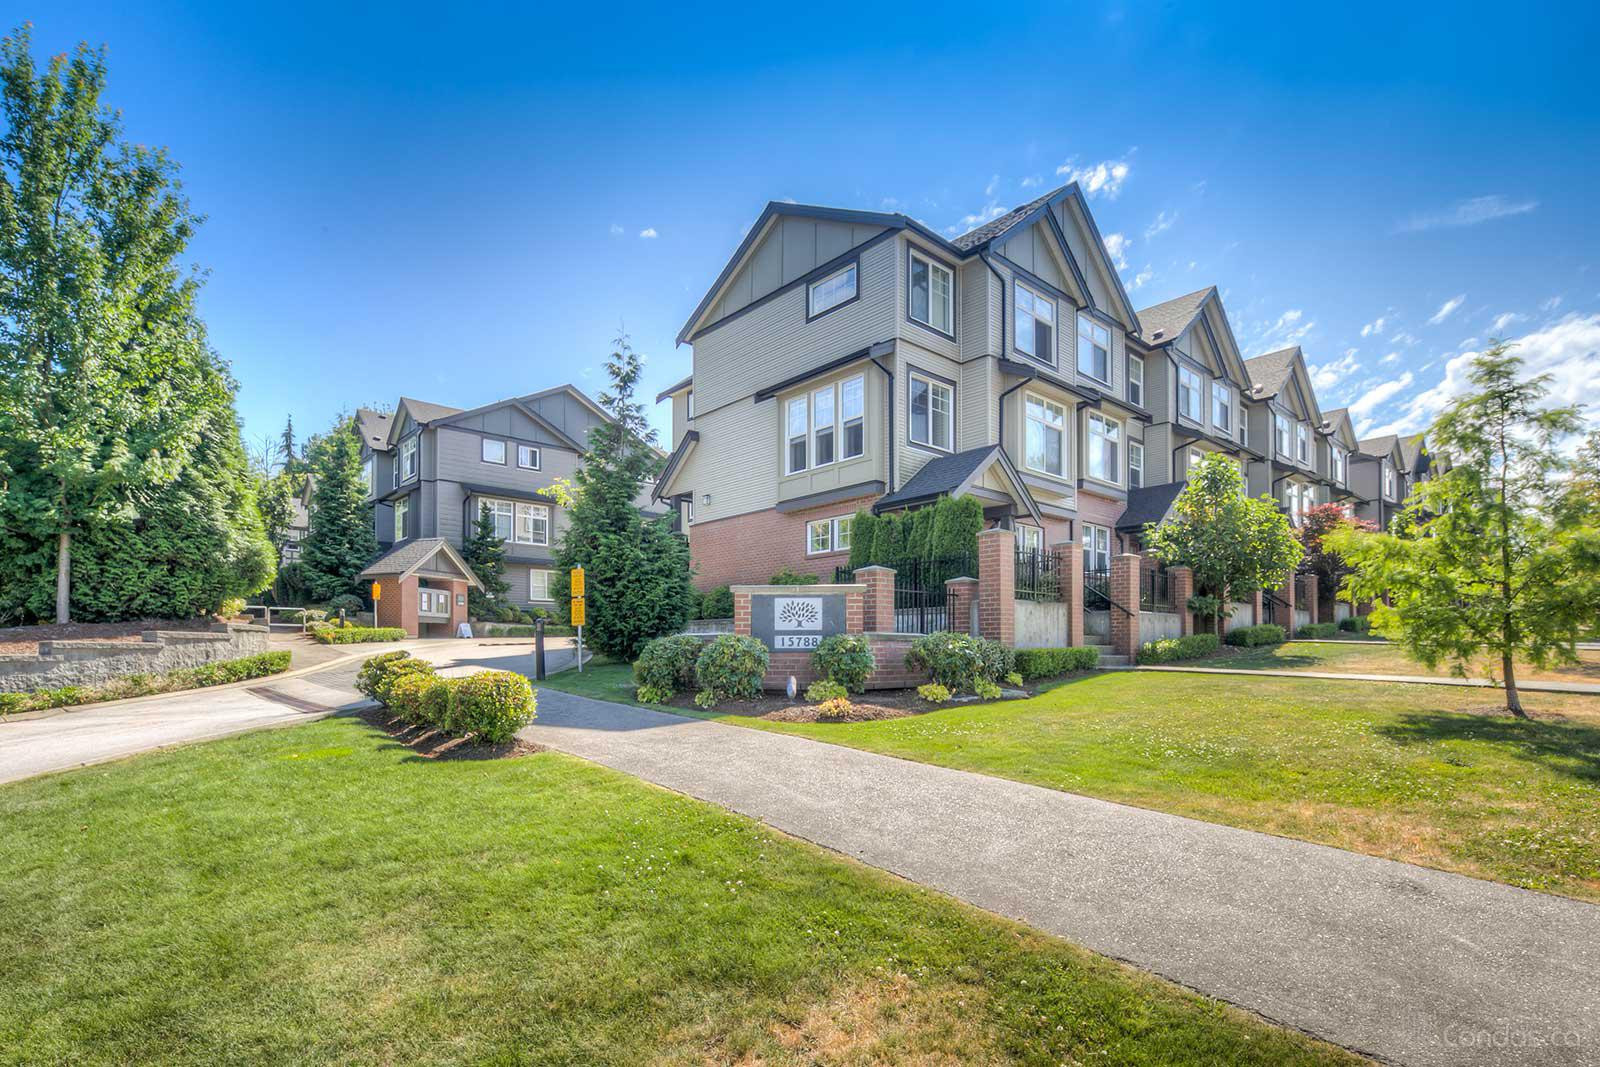 Bishop Creek at 15788 104 Ave, Surrey 1